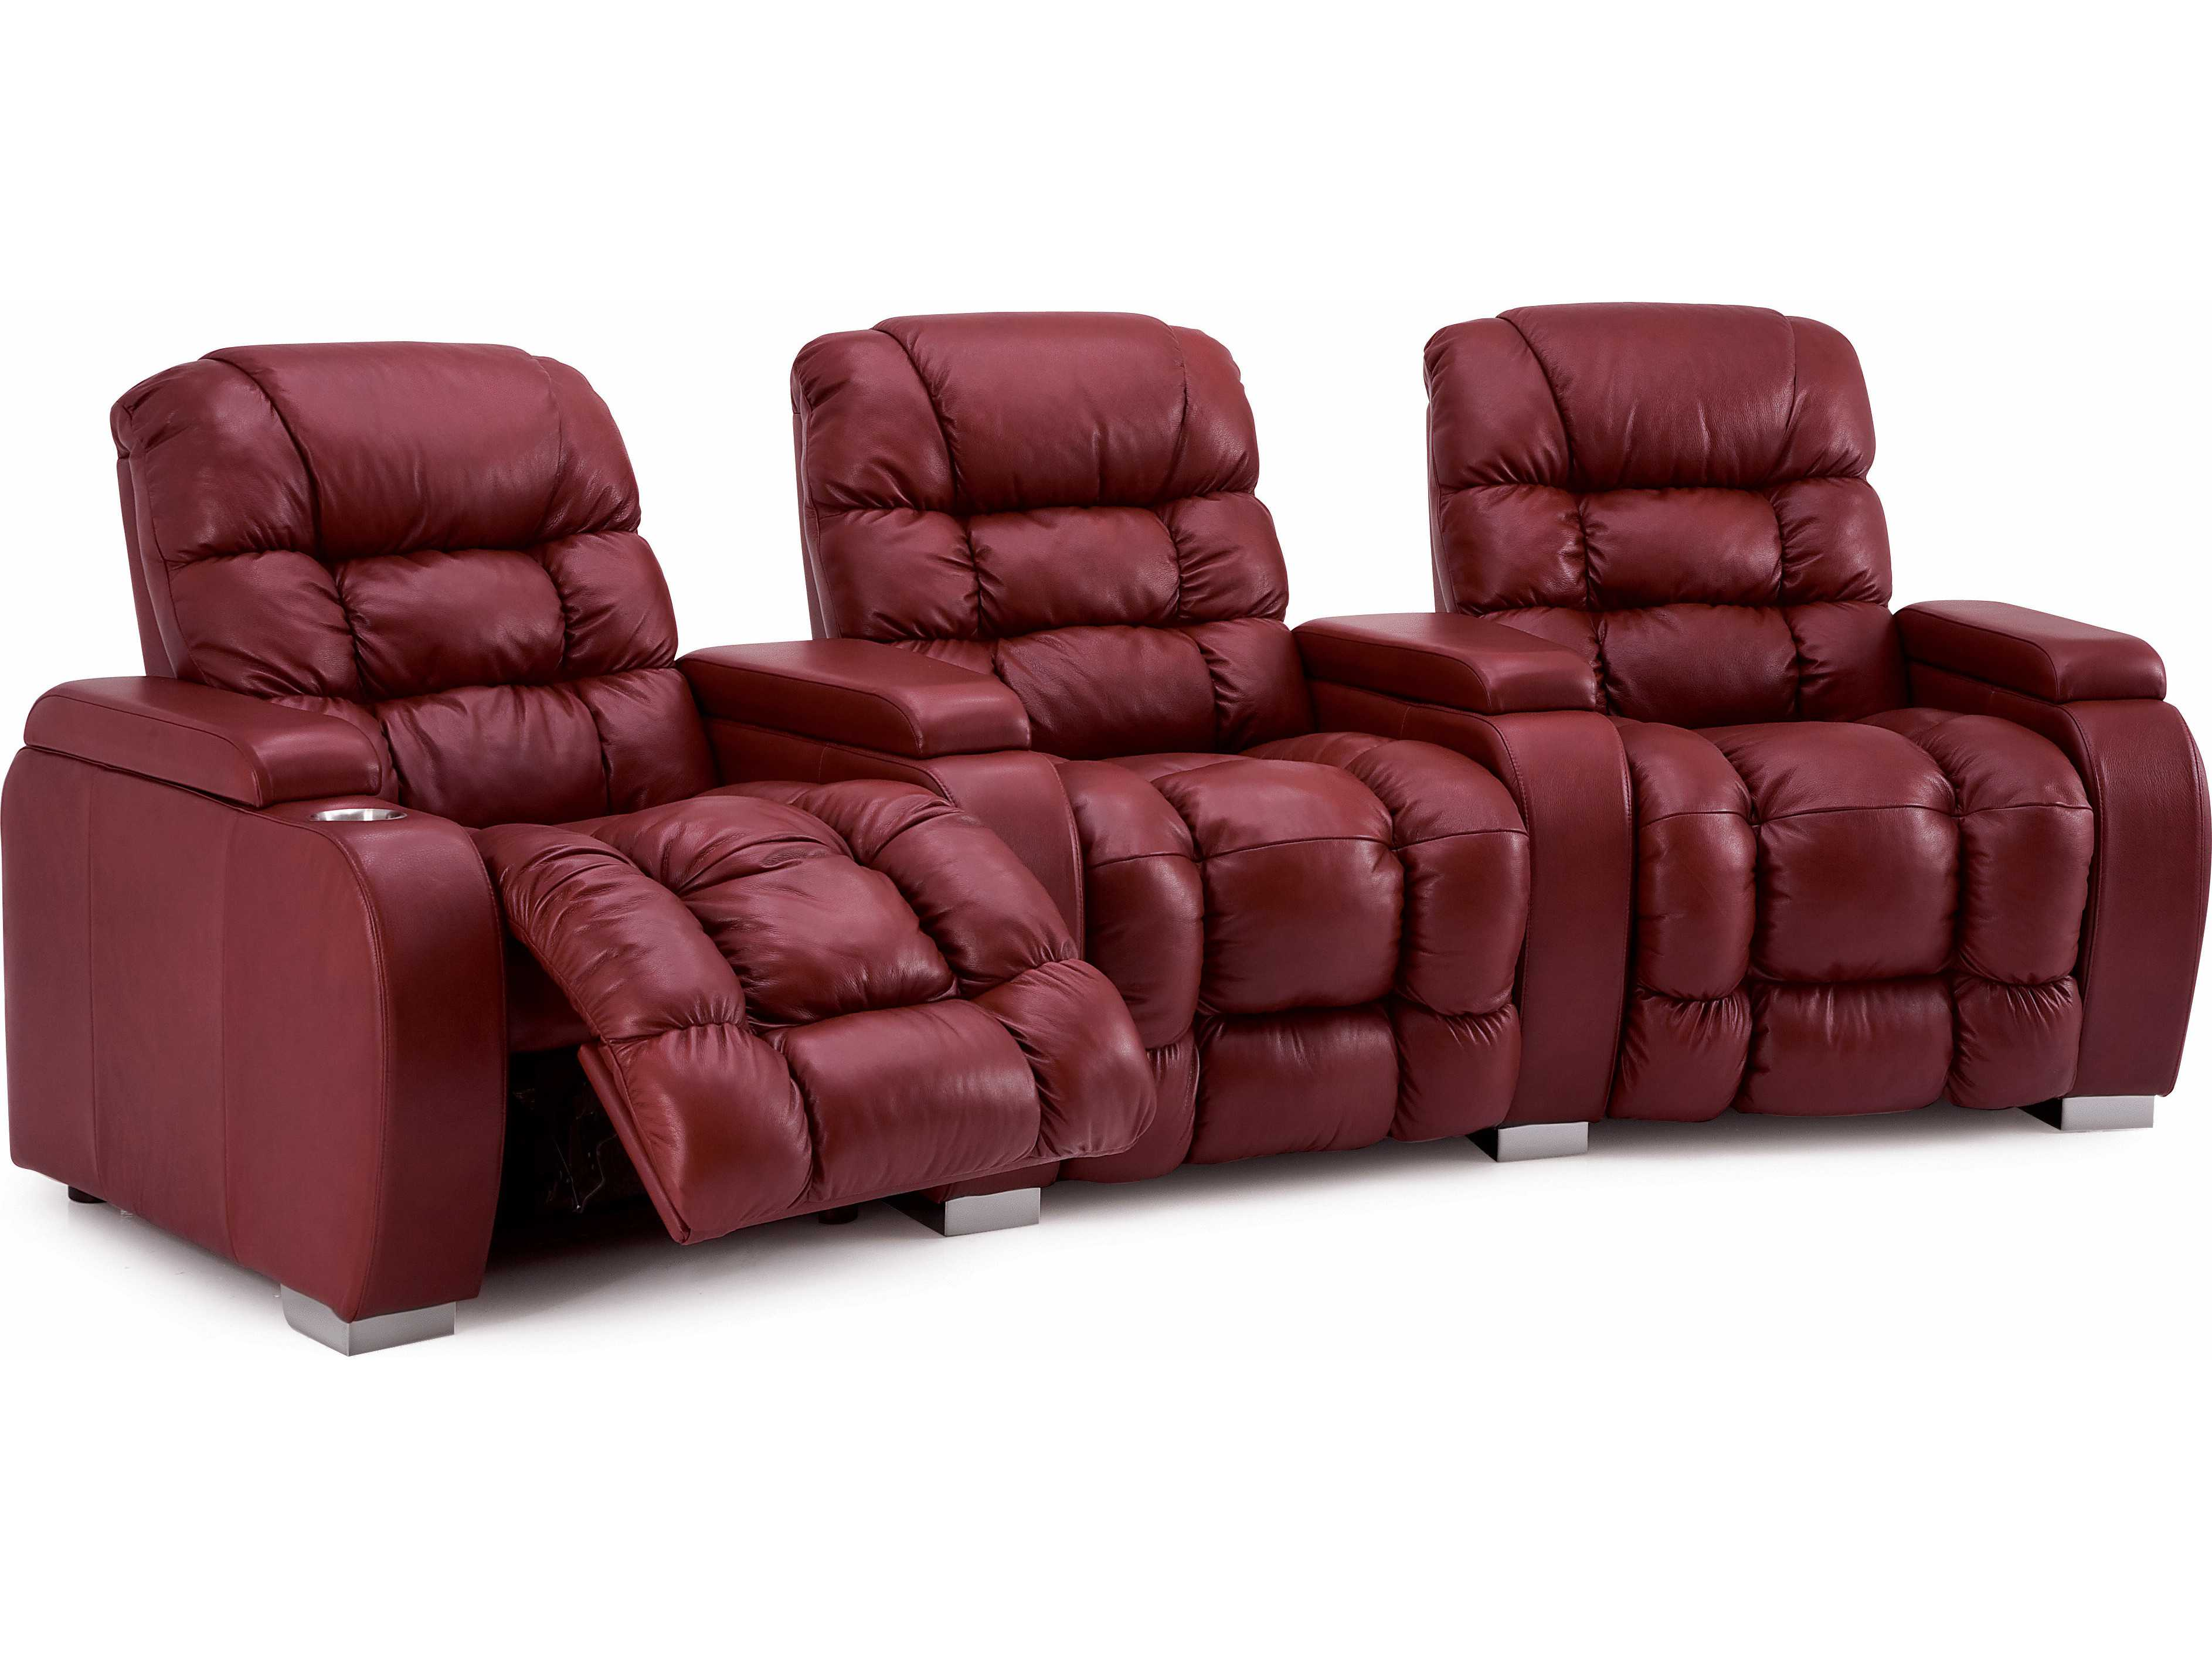 4 person reclining sofa large fabric corner sofas palliser linus hts powered home theater